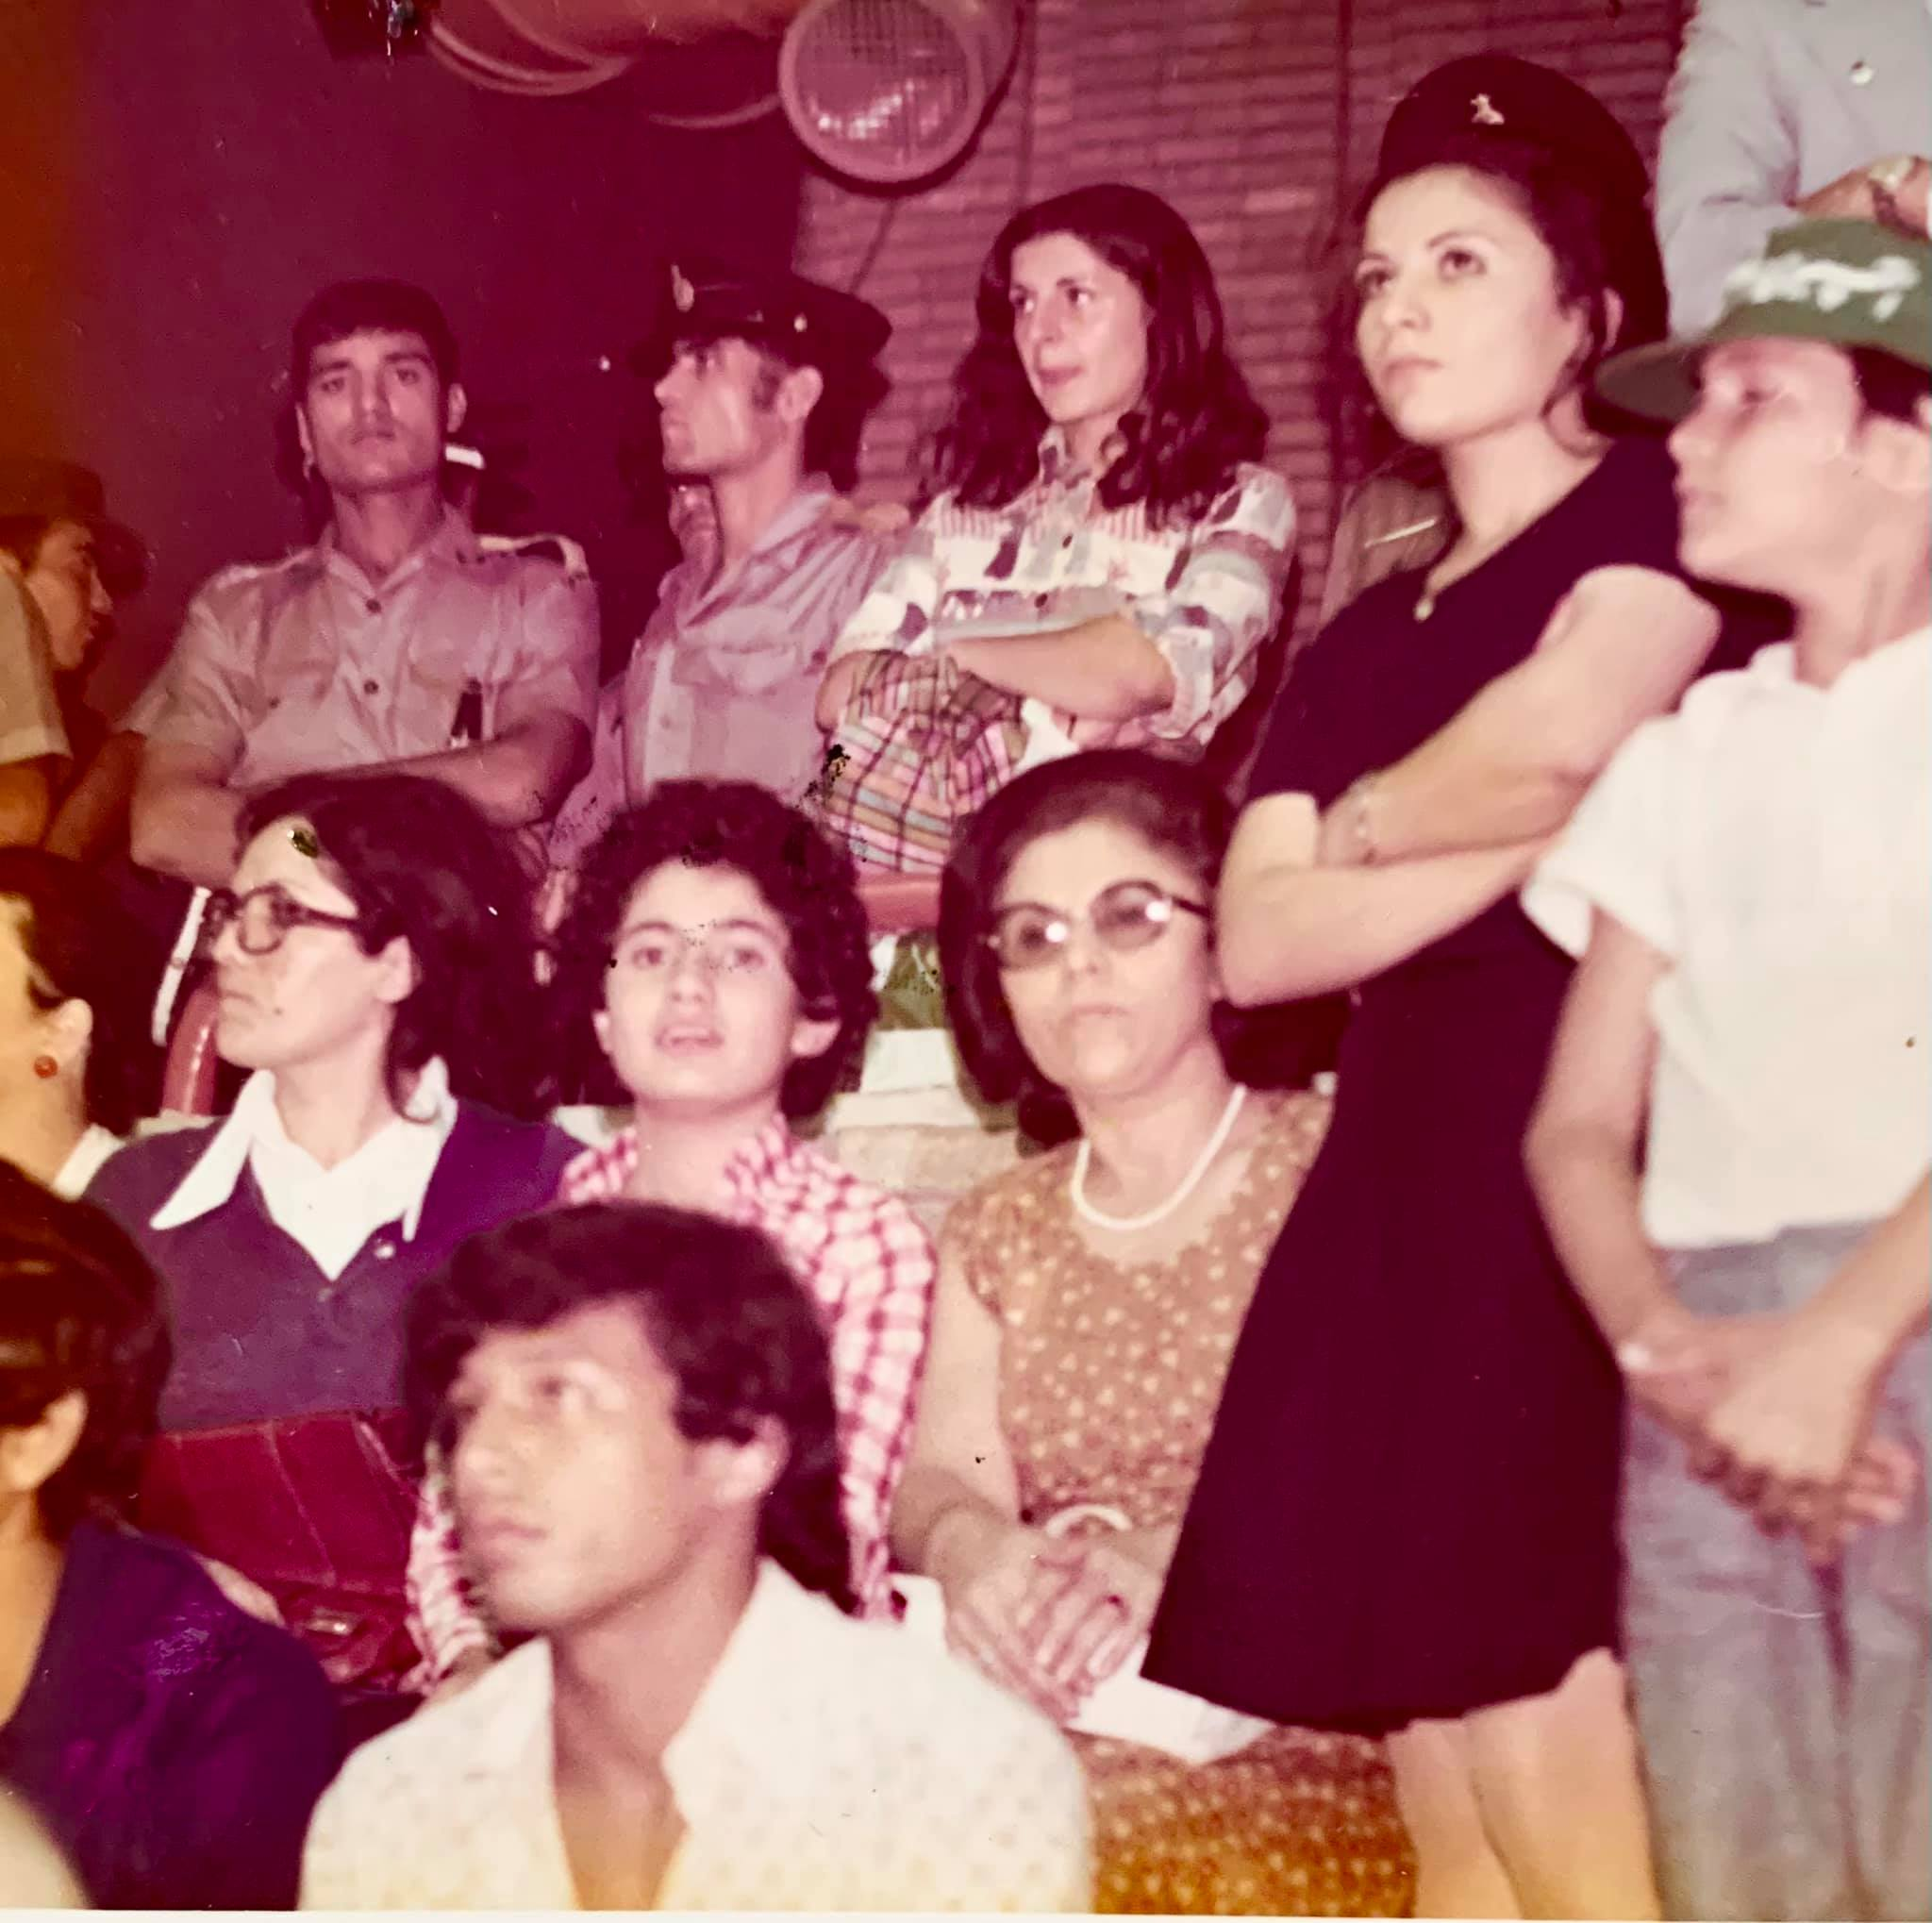 Throwback Thursday: With my family, at an event of the 1974 Asian Games in Tehran